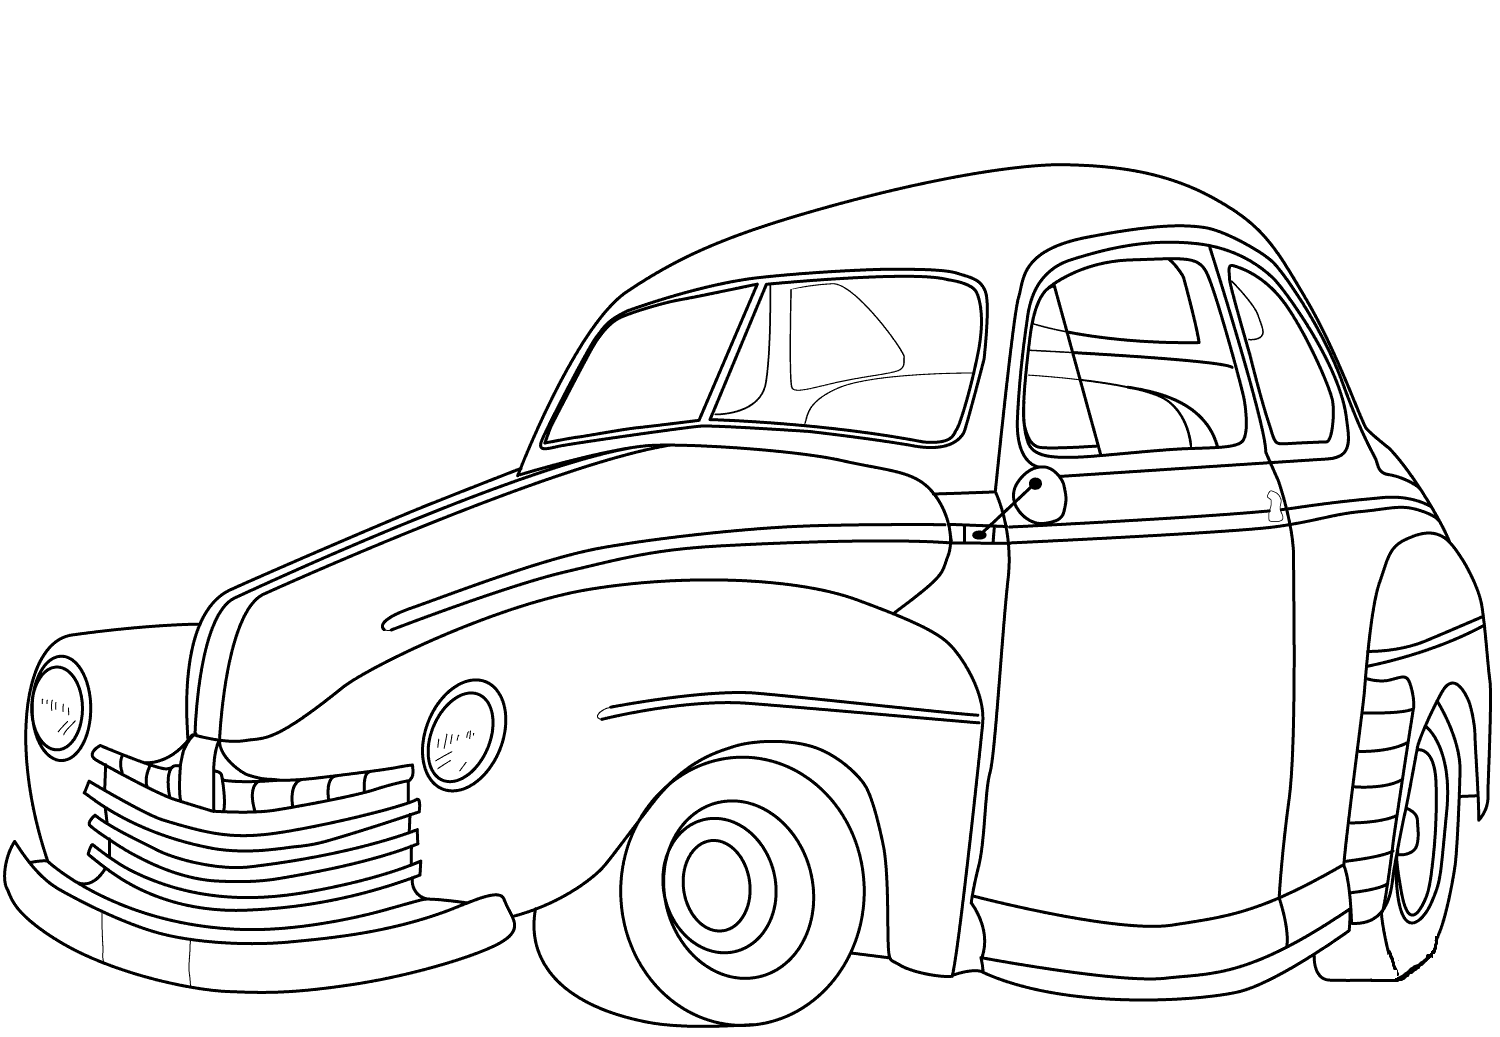 1946 Plymouth De Luxe Cuope coloring page